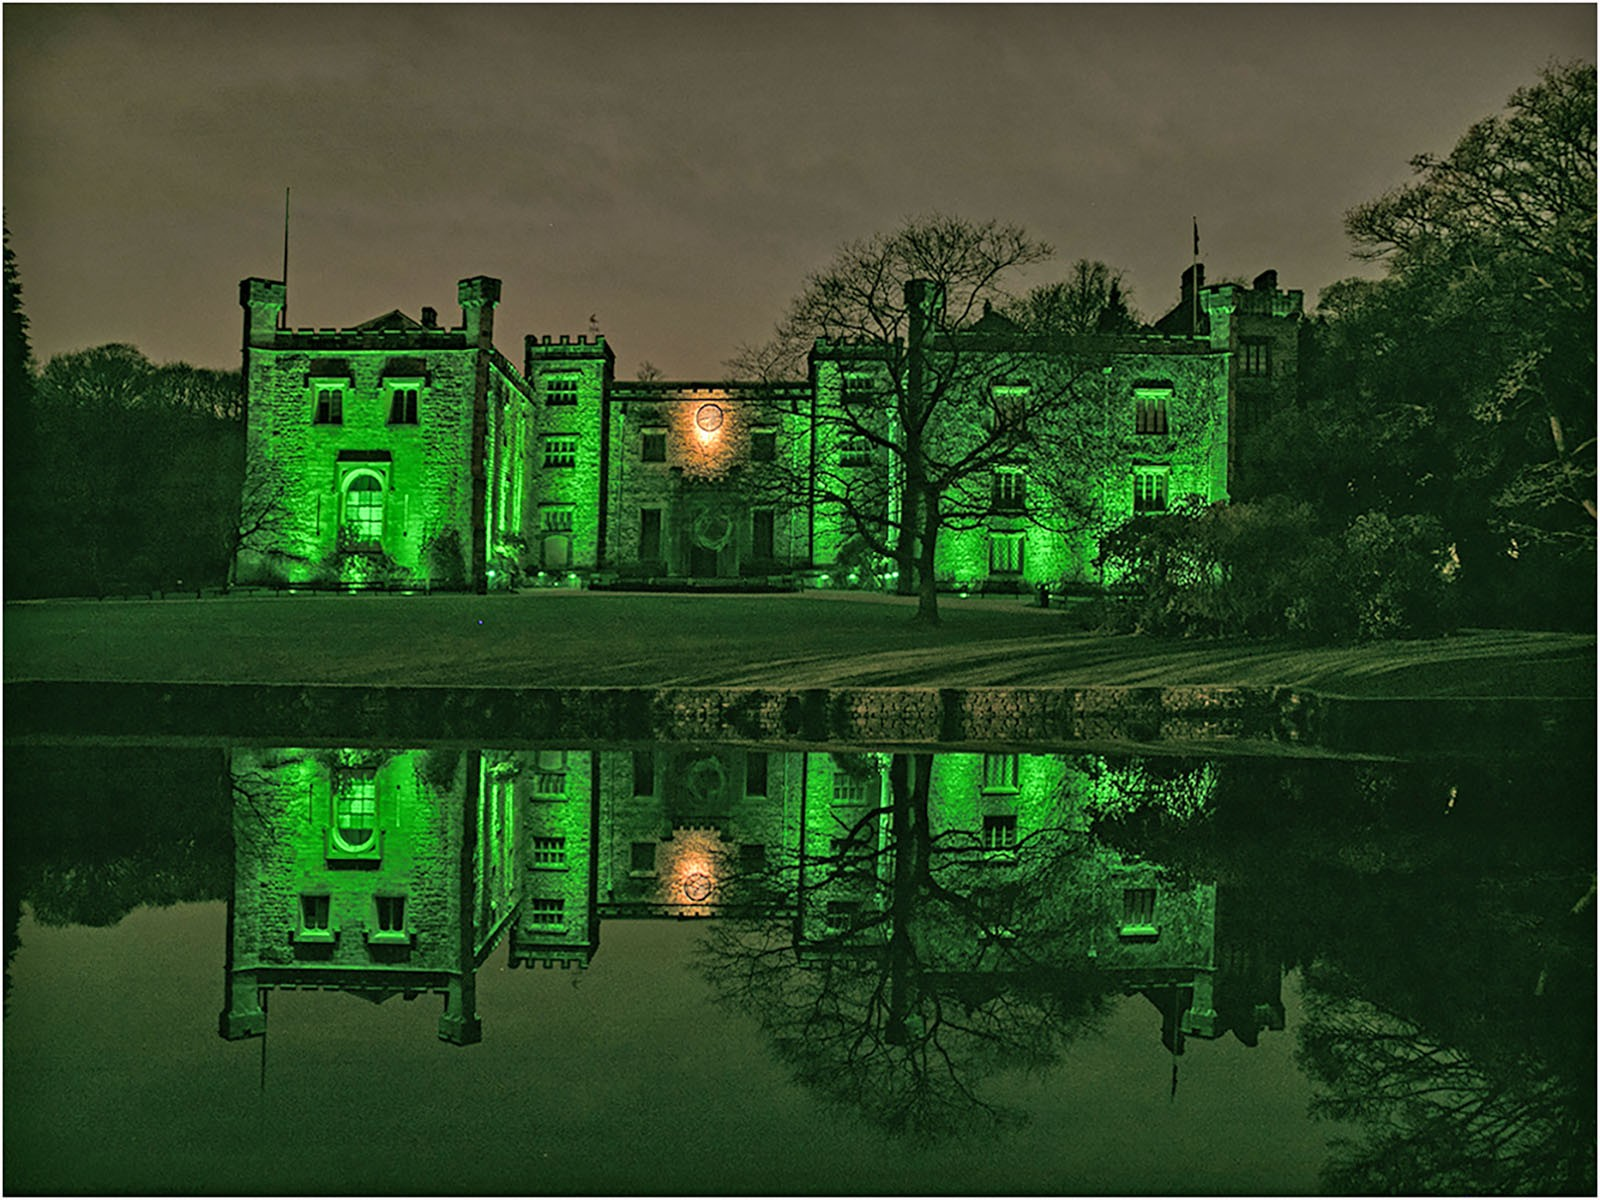 Townley Hall by night